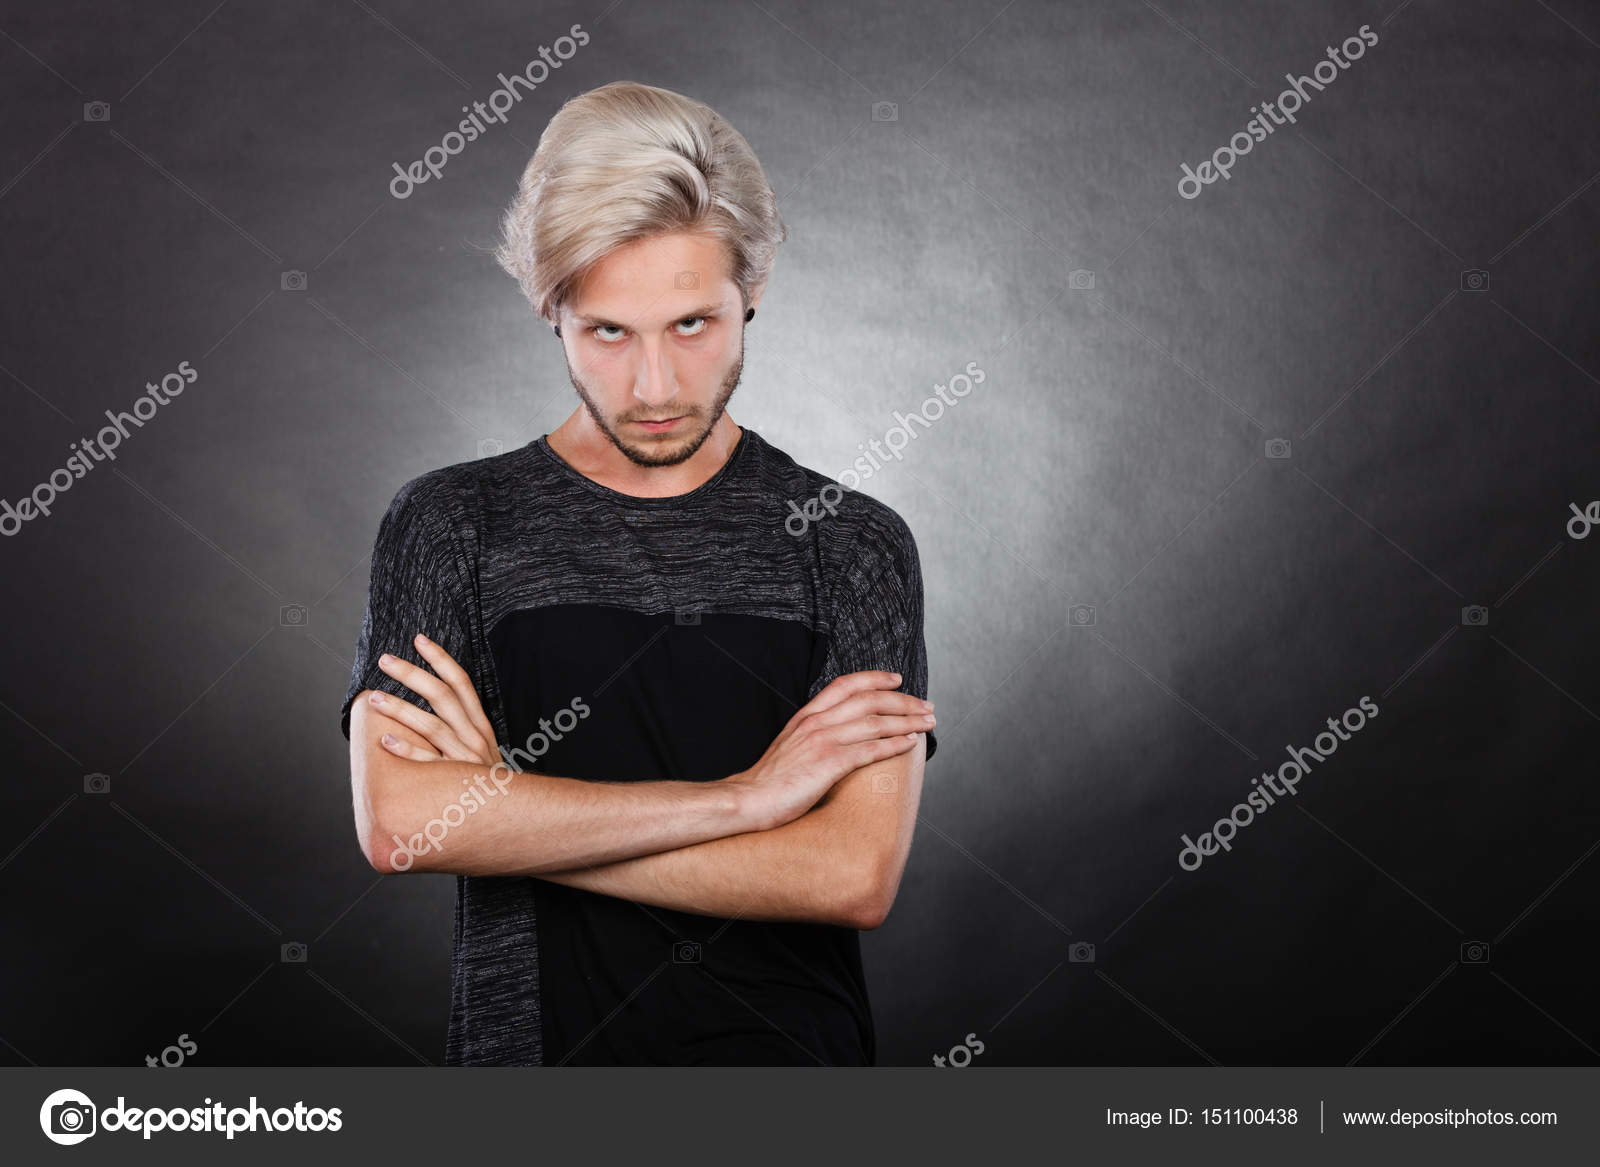 Angry Serious Young Man Negative Emotion Stock Photo